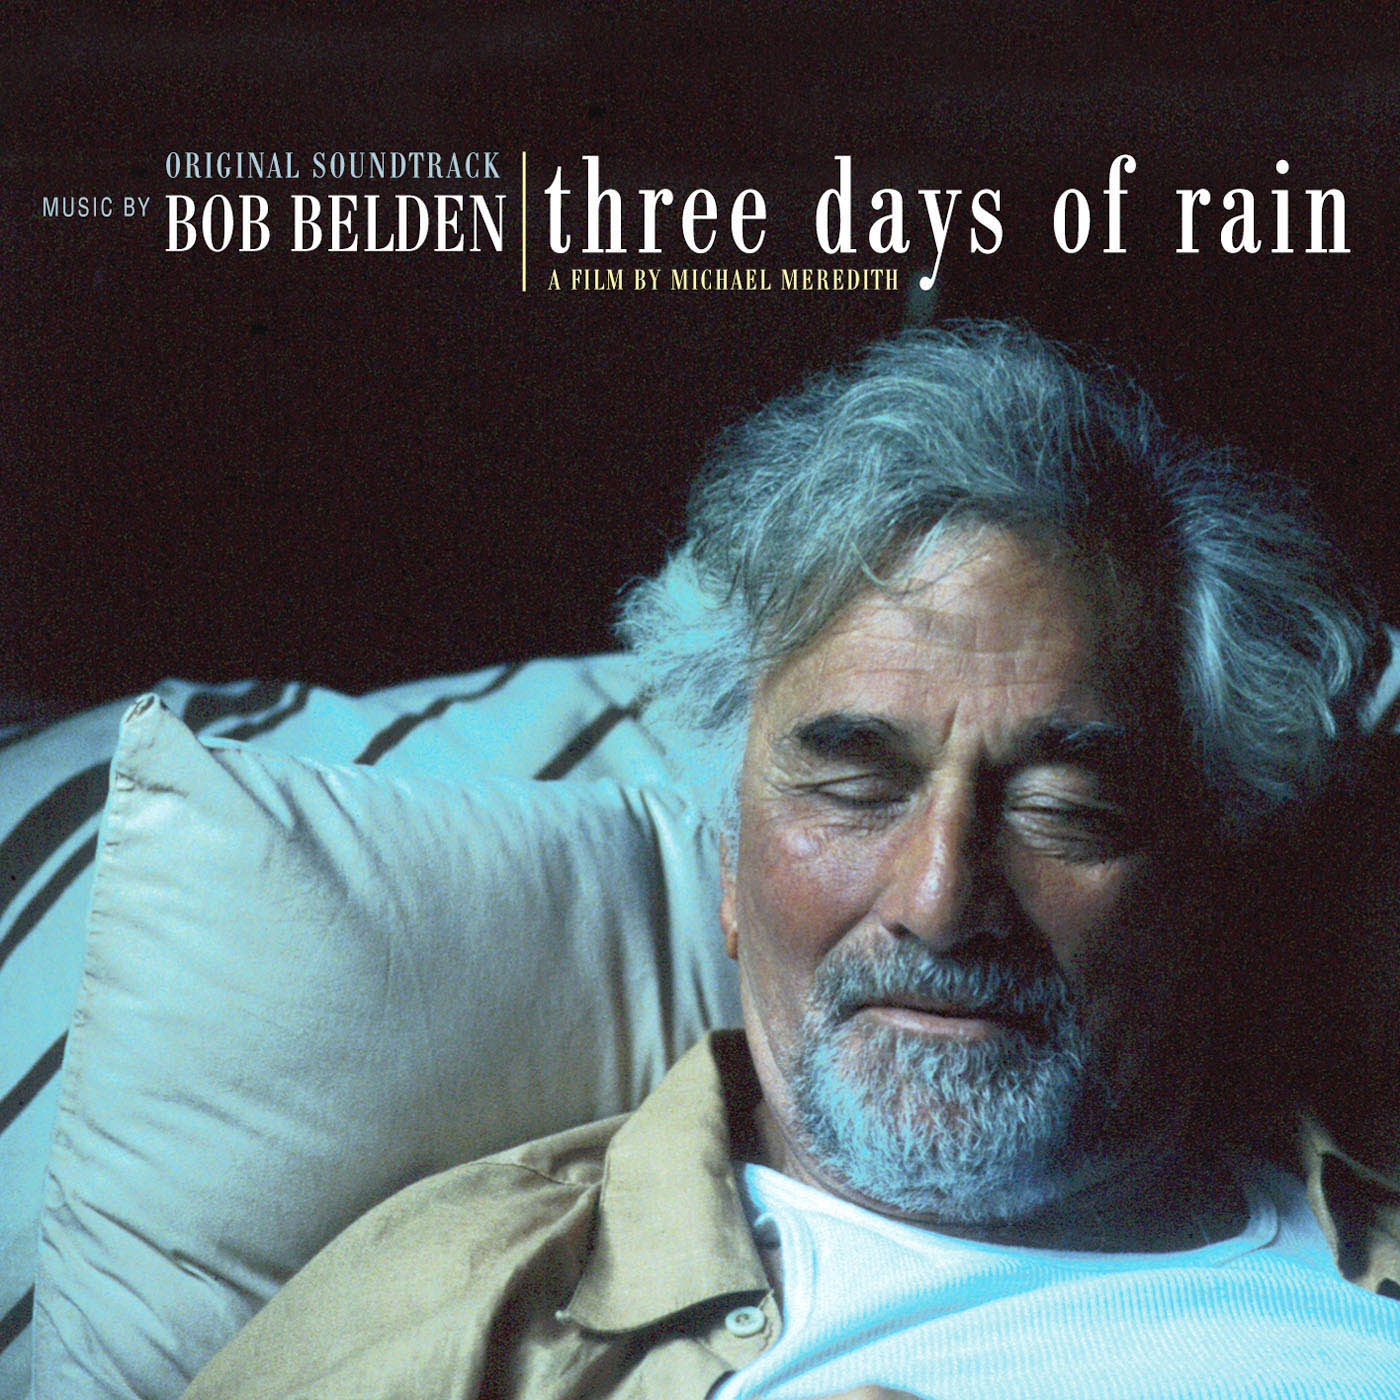 Three Days of Rain Film Original Soundtrack written by Bob Belden